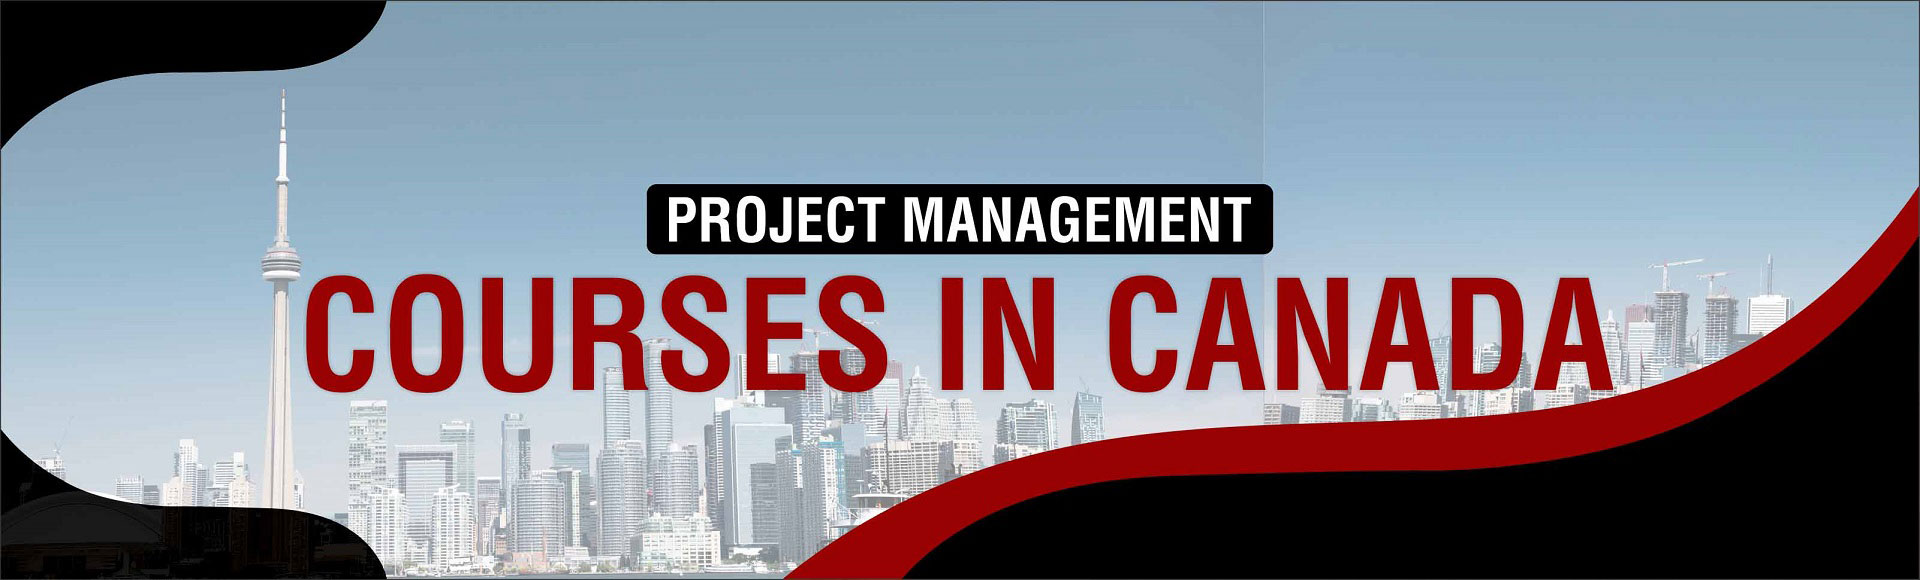 Project Management Courses in Canada